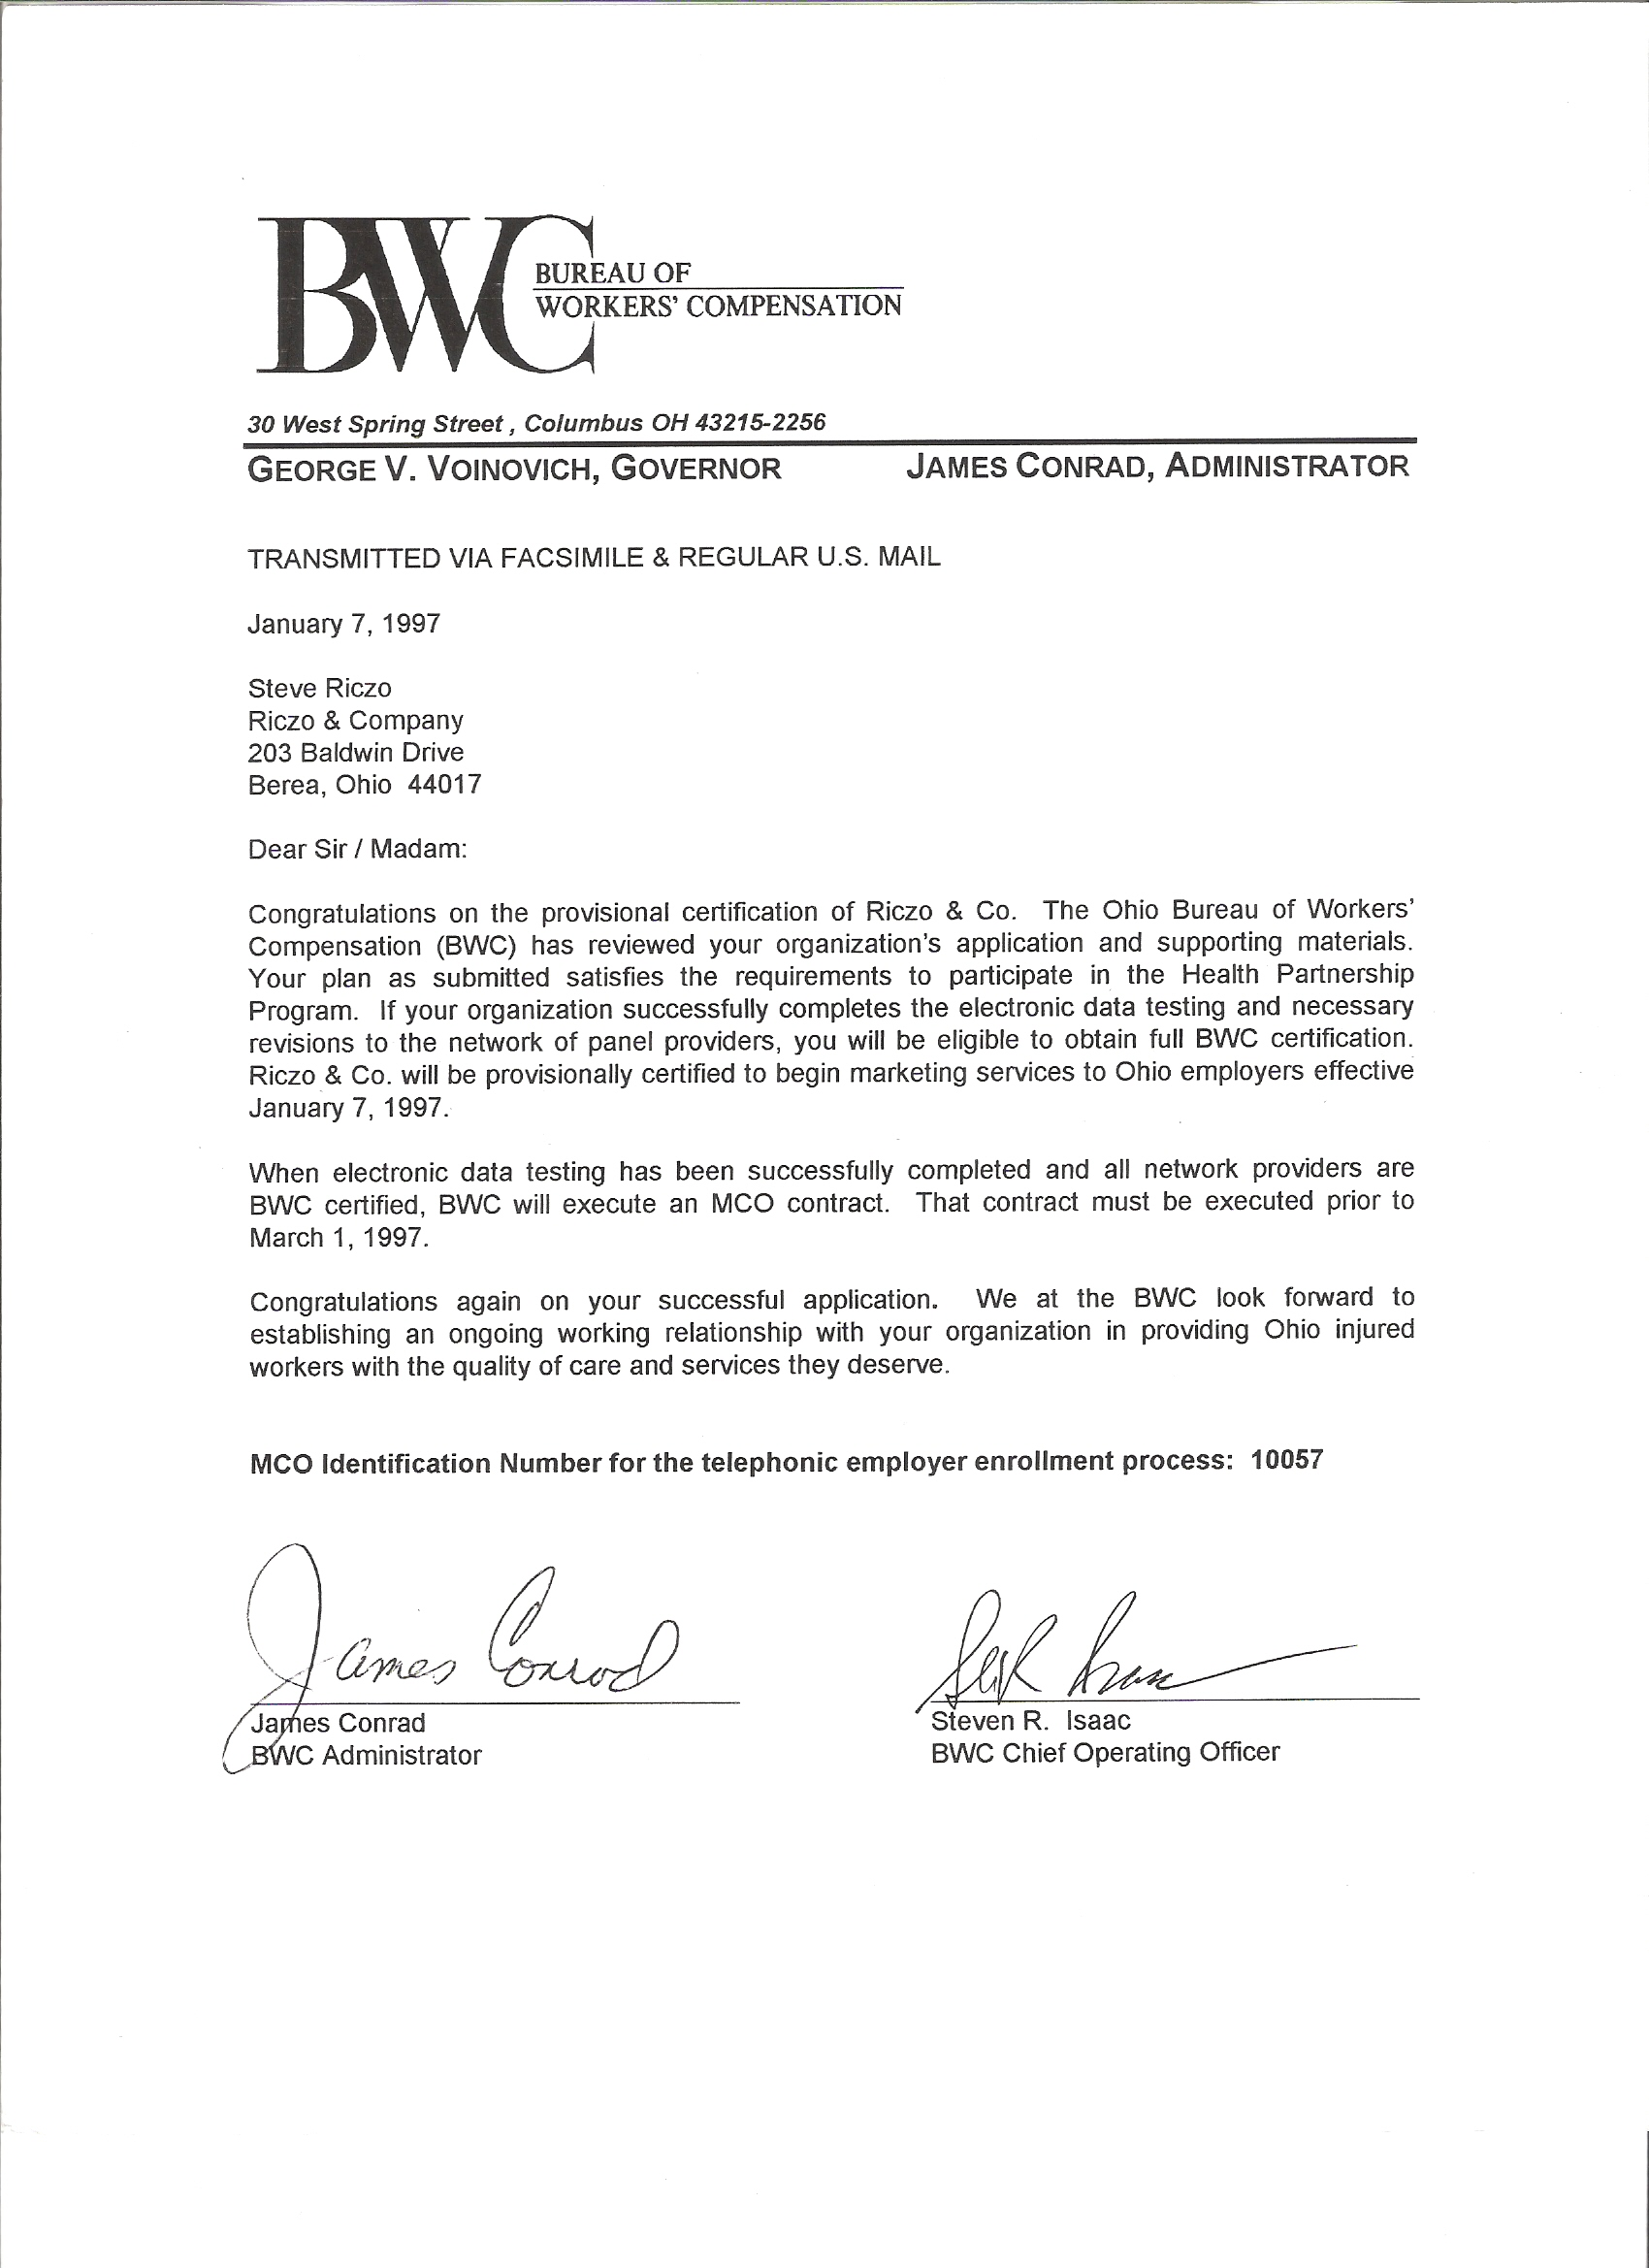 mco report card for riczo co and letter of approval from ohio